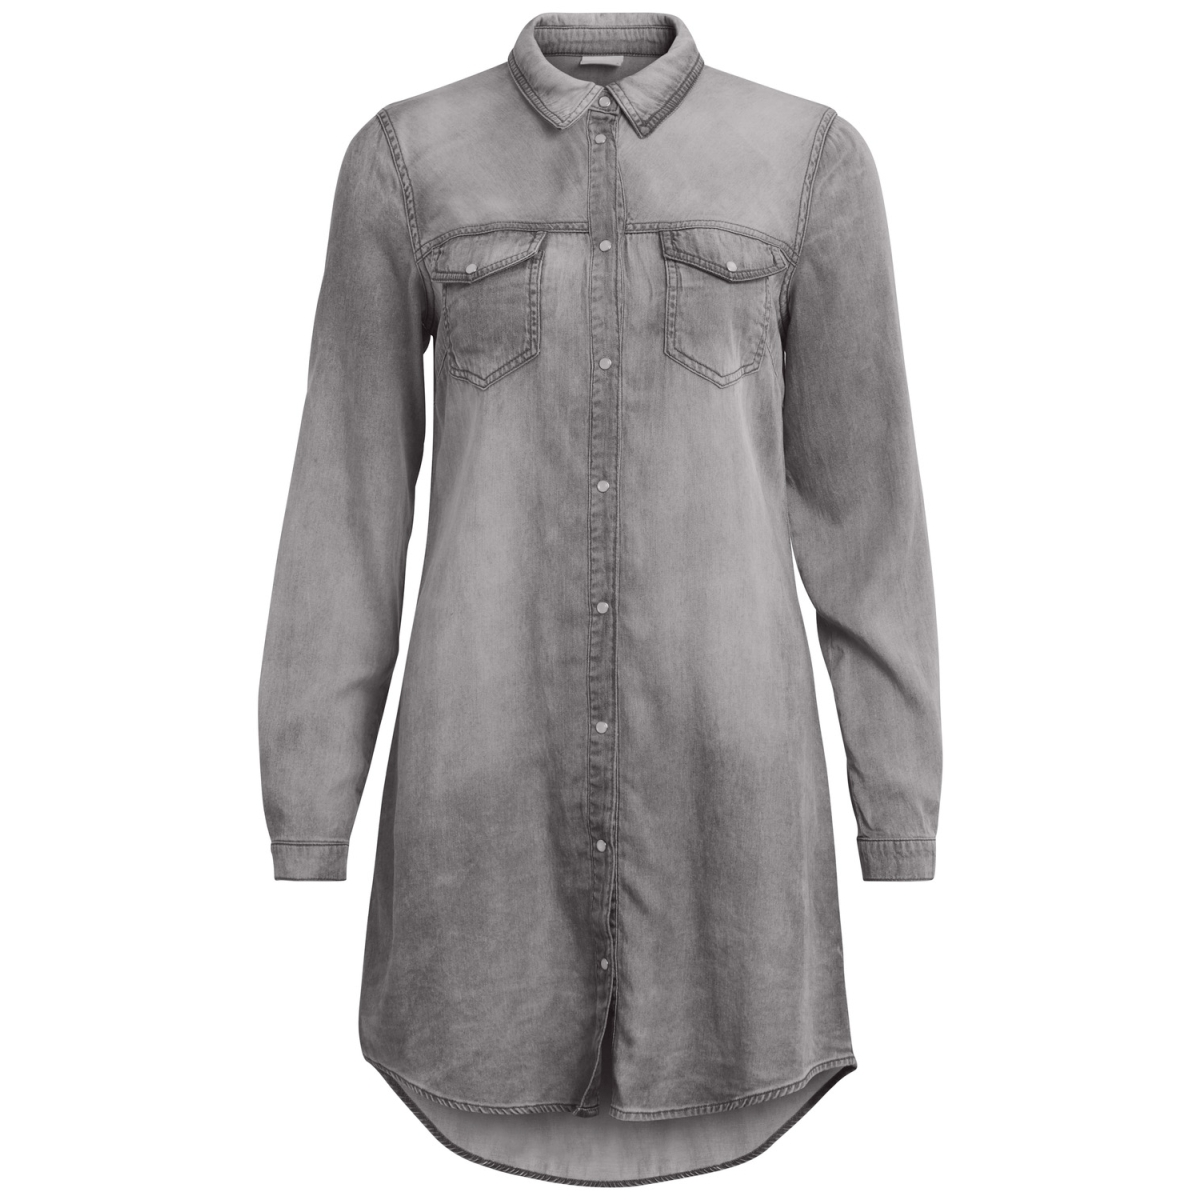 vibista denim dress-fav 14043658 vila blouse grey denim